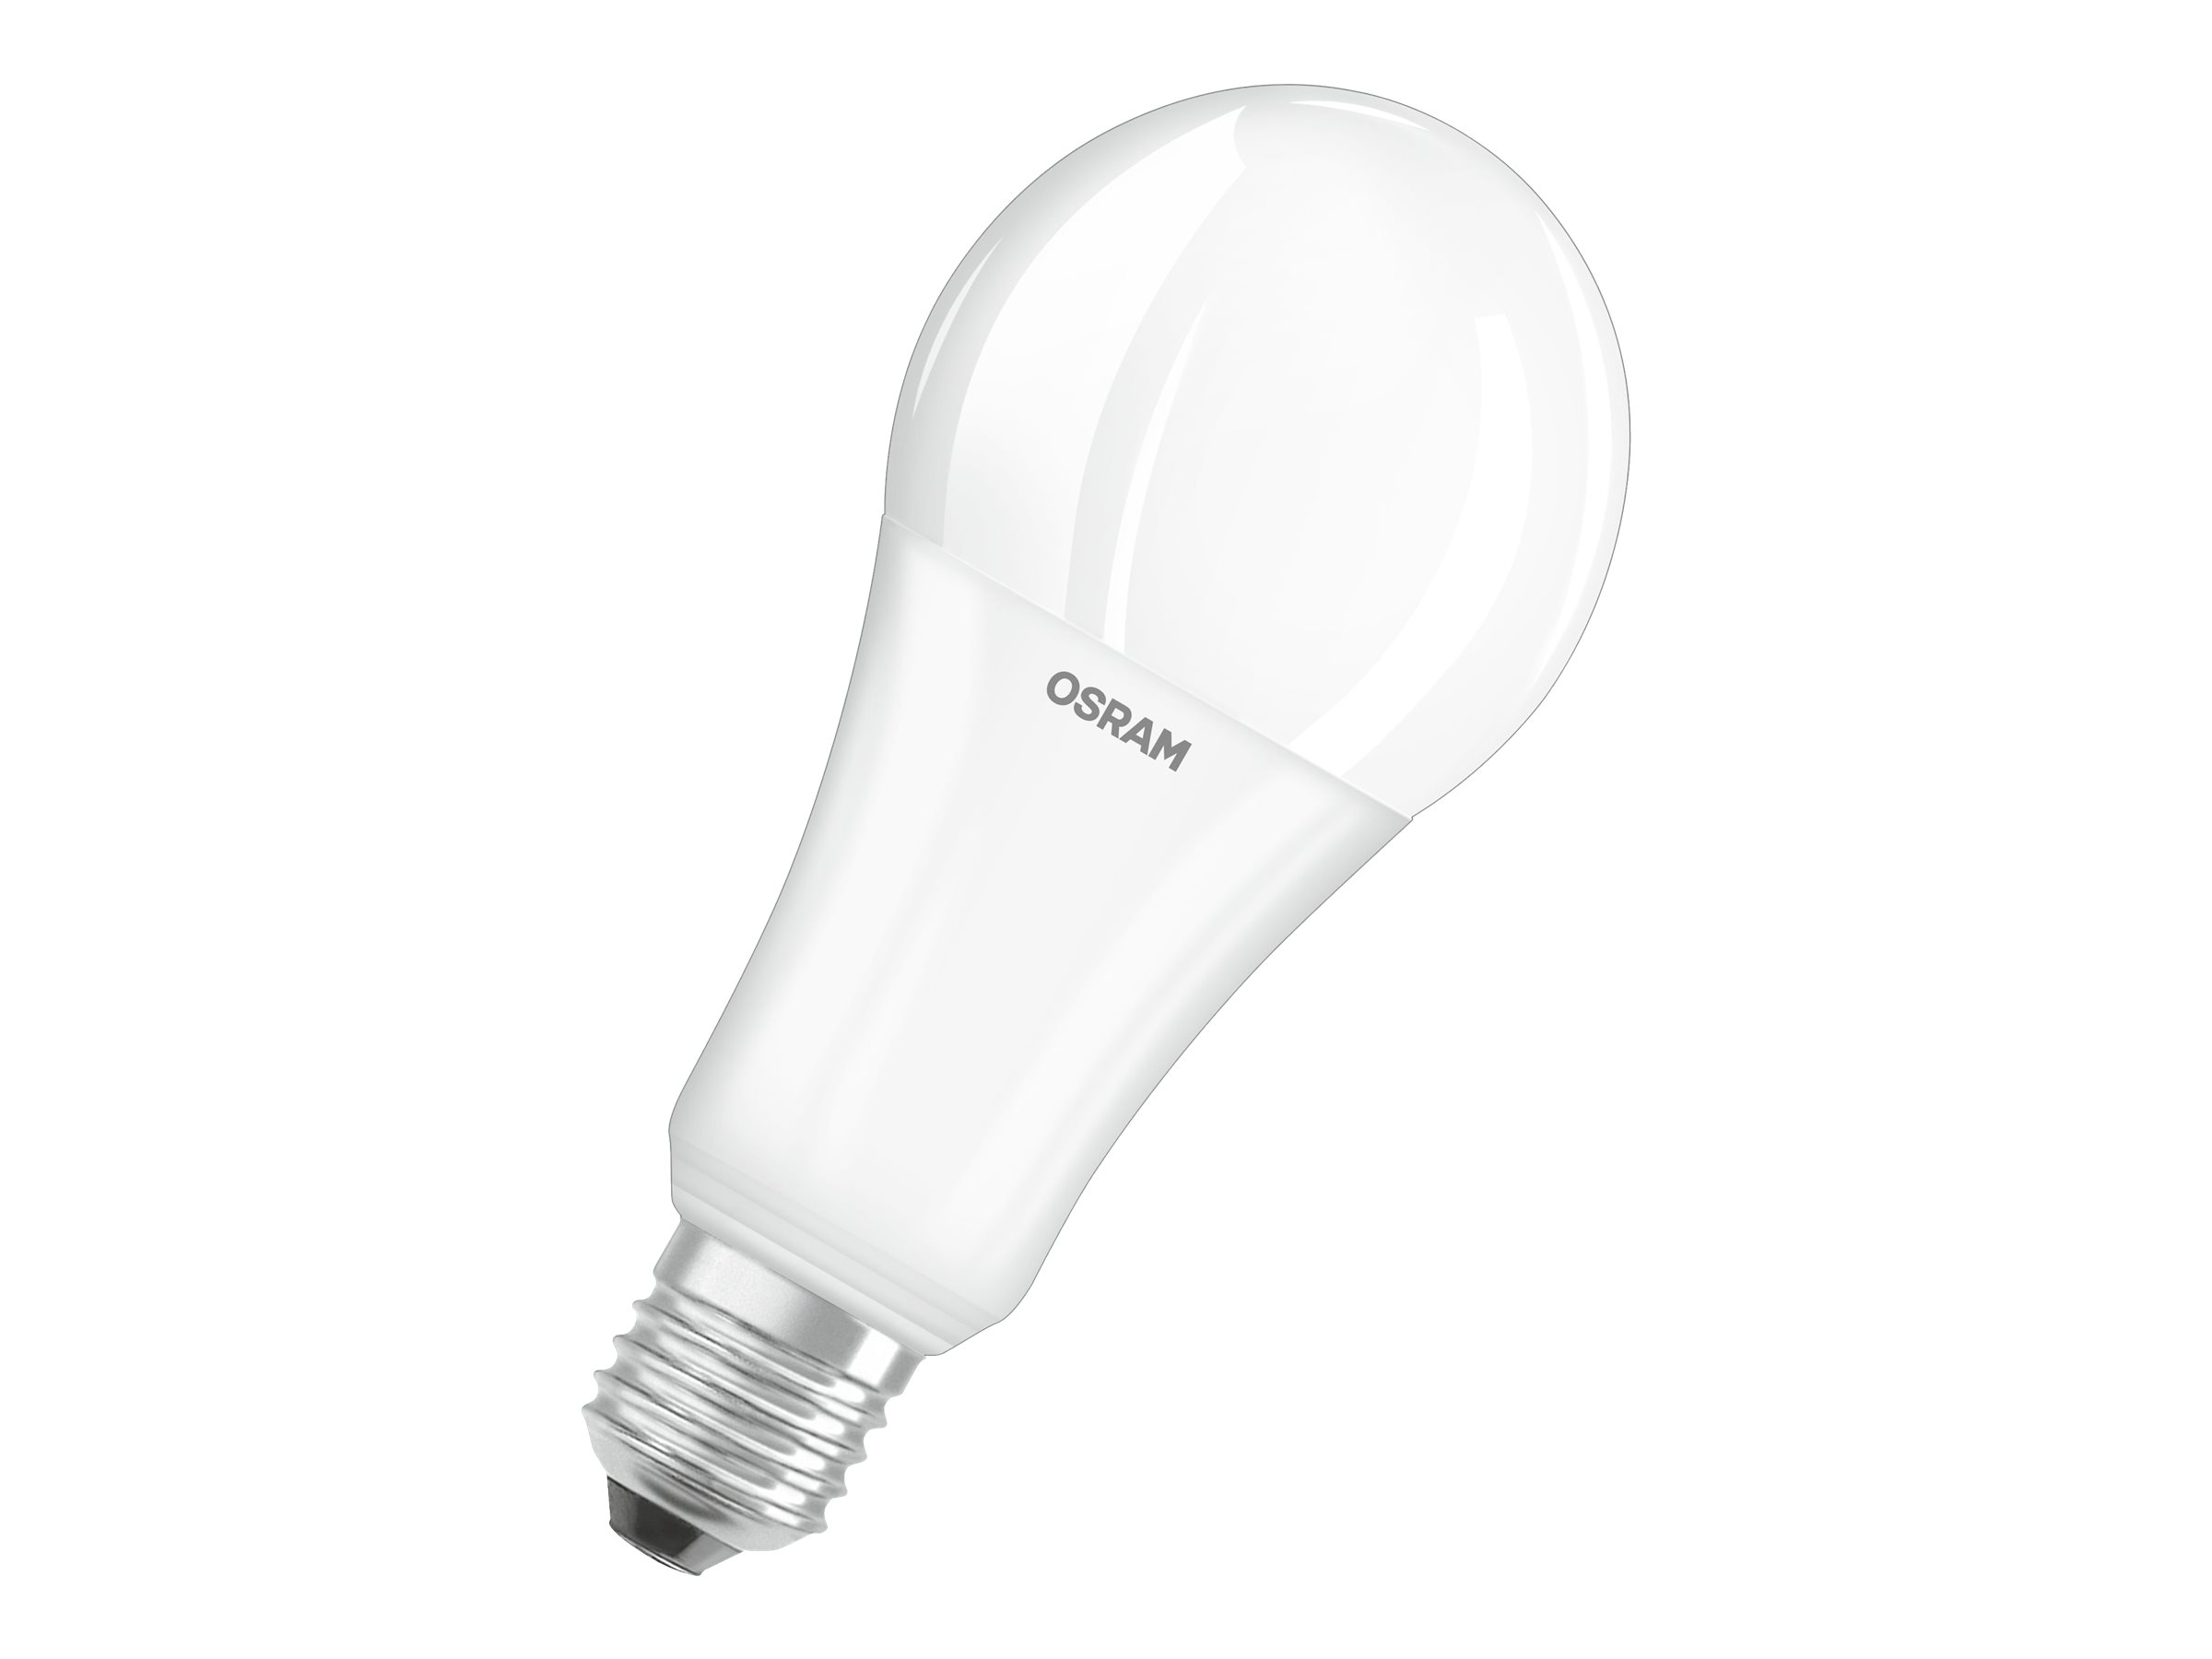 OSRAM PARATHOM advanced CLASSIC A - LED-Glühlampe - Form: A66 - matt Finish - E27 - 21 W (Entsprechung 150 W)